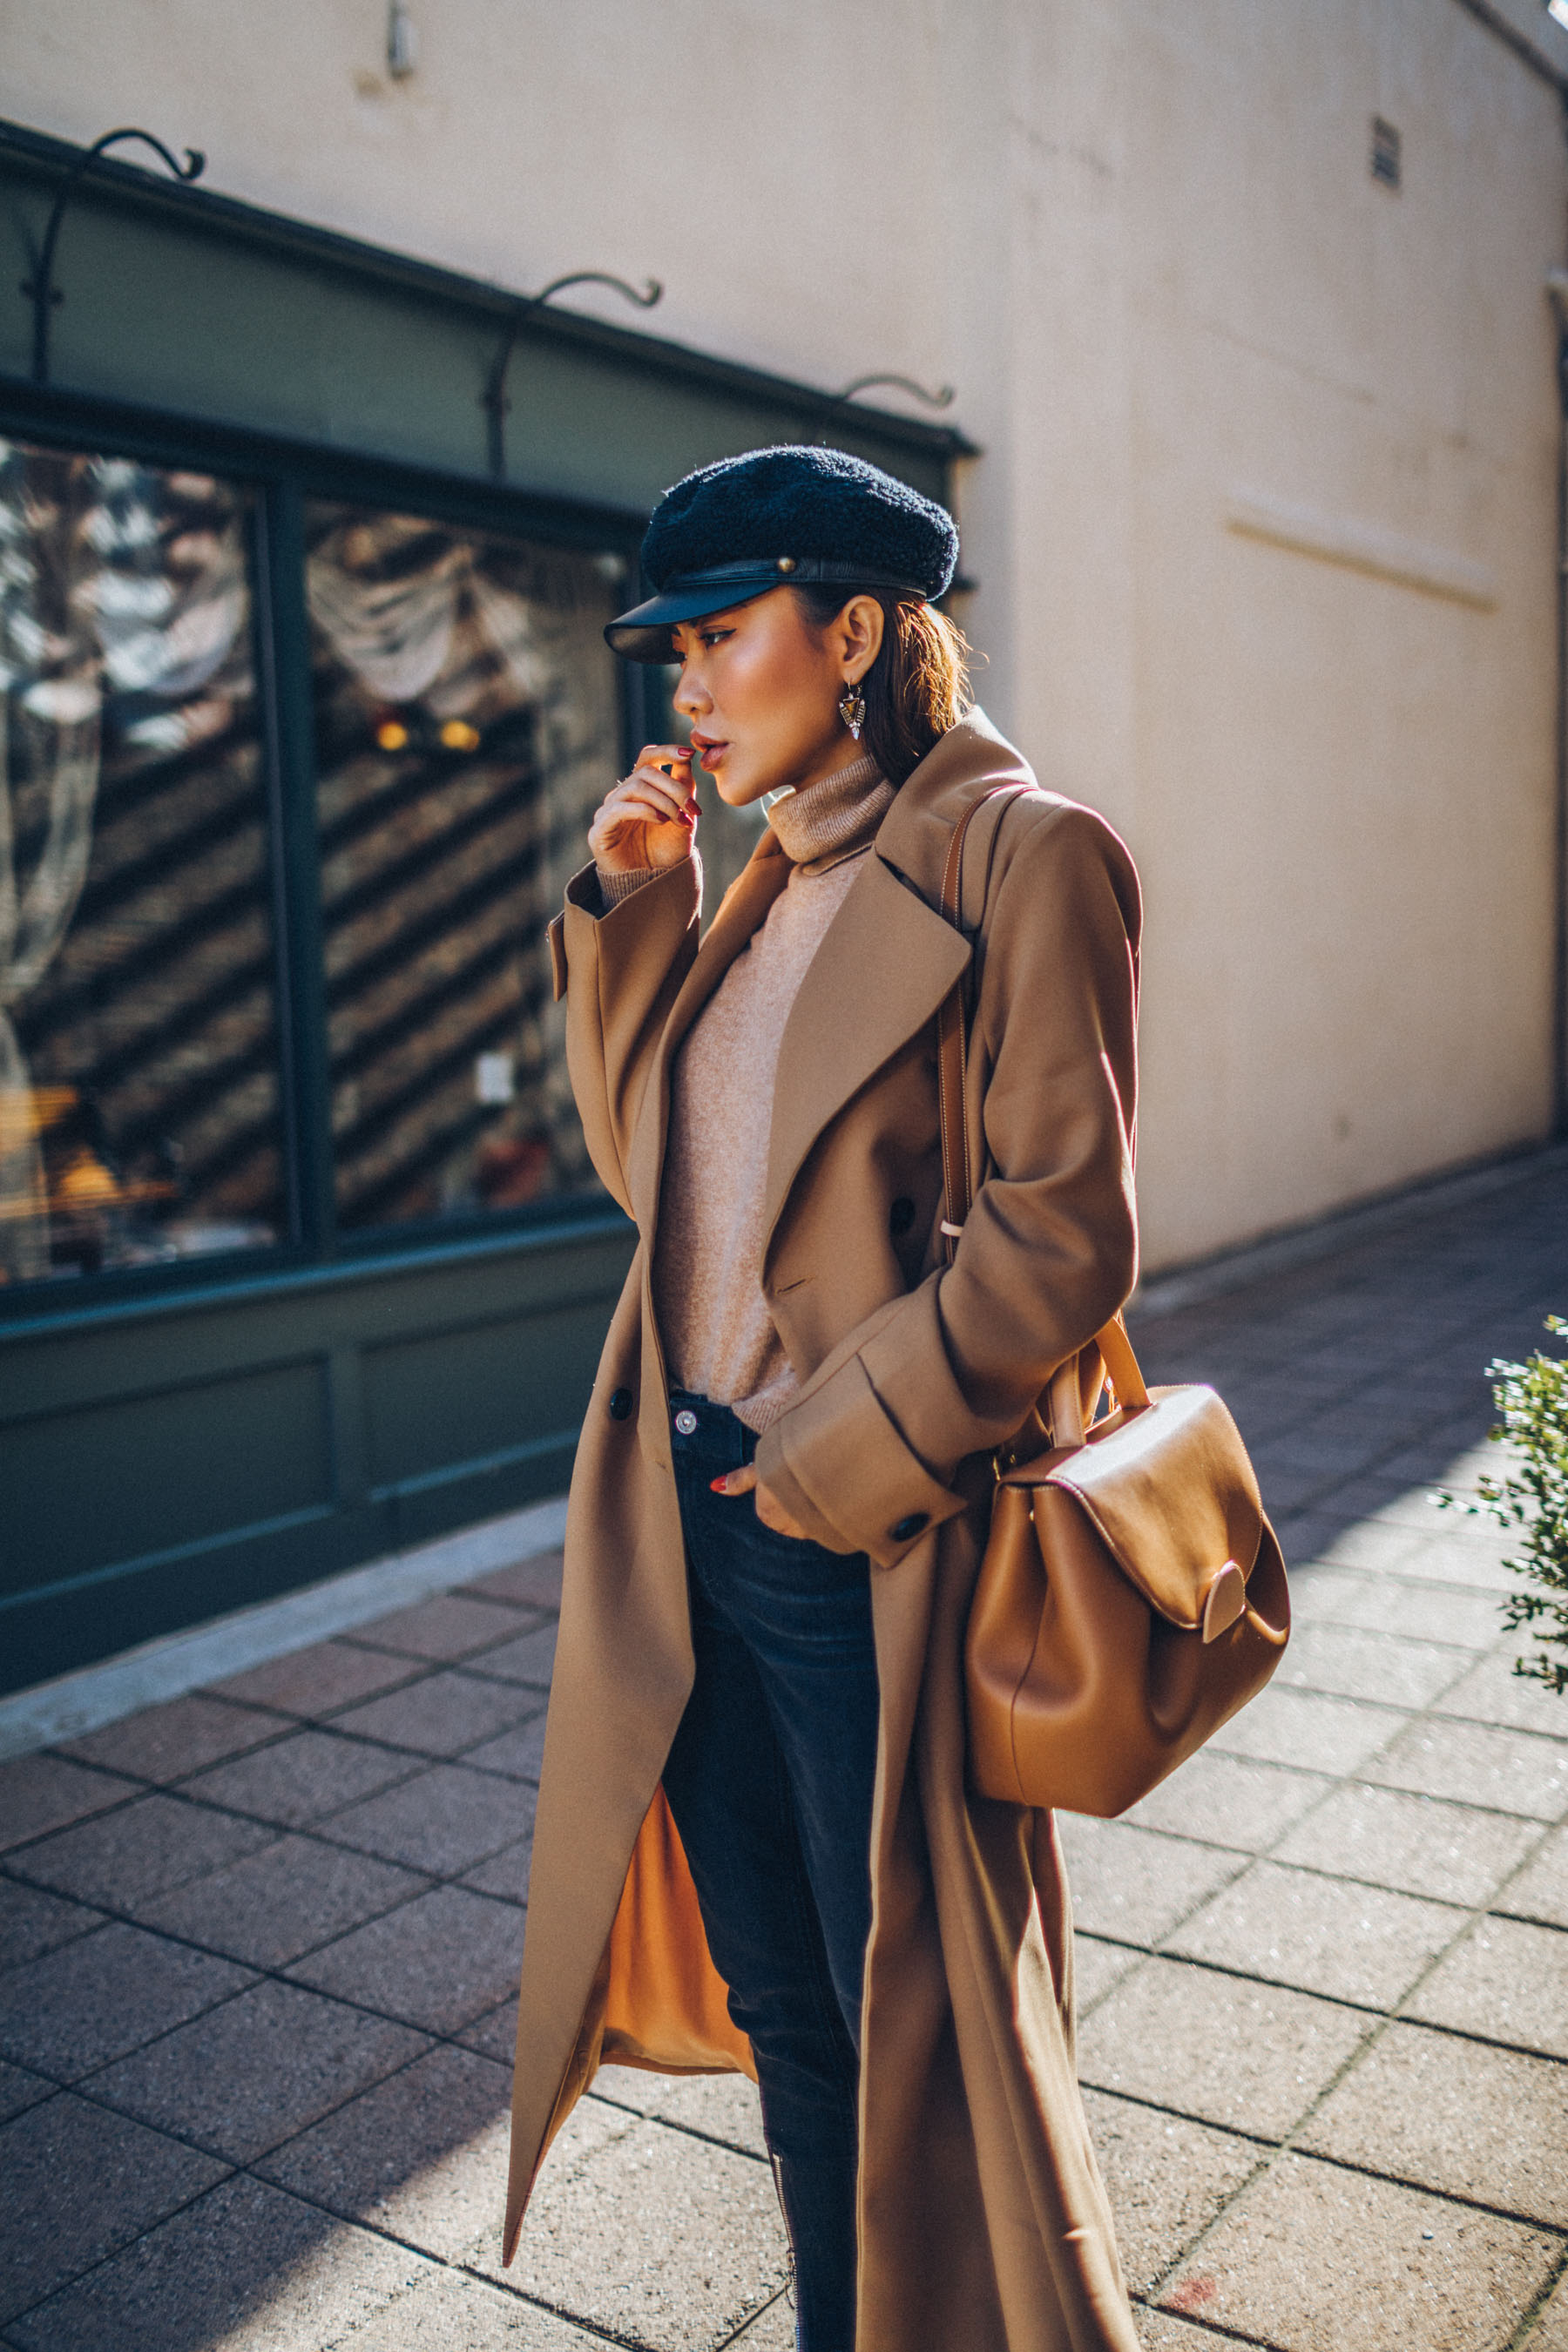 fall workwear essentials, Belted Camel Coat with Dark Denim Baker Boy Cap and Satchel // Notjessfashion.com // New York fashion blogger, asian blogger, classic camel coat, winter outfit, classic winter outfit, cozy layered outfut, nude boots, nude bag, baker boy hat, how to style camel coat, jessica wang, fashion blogger, street style, fashion blogger street style, oversized coat, duster coat, maxi coat